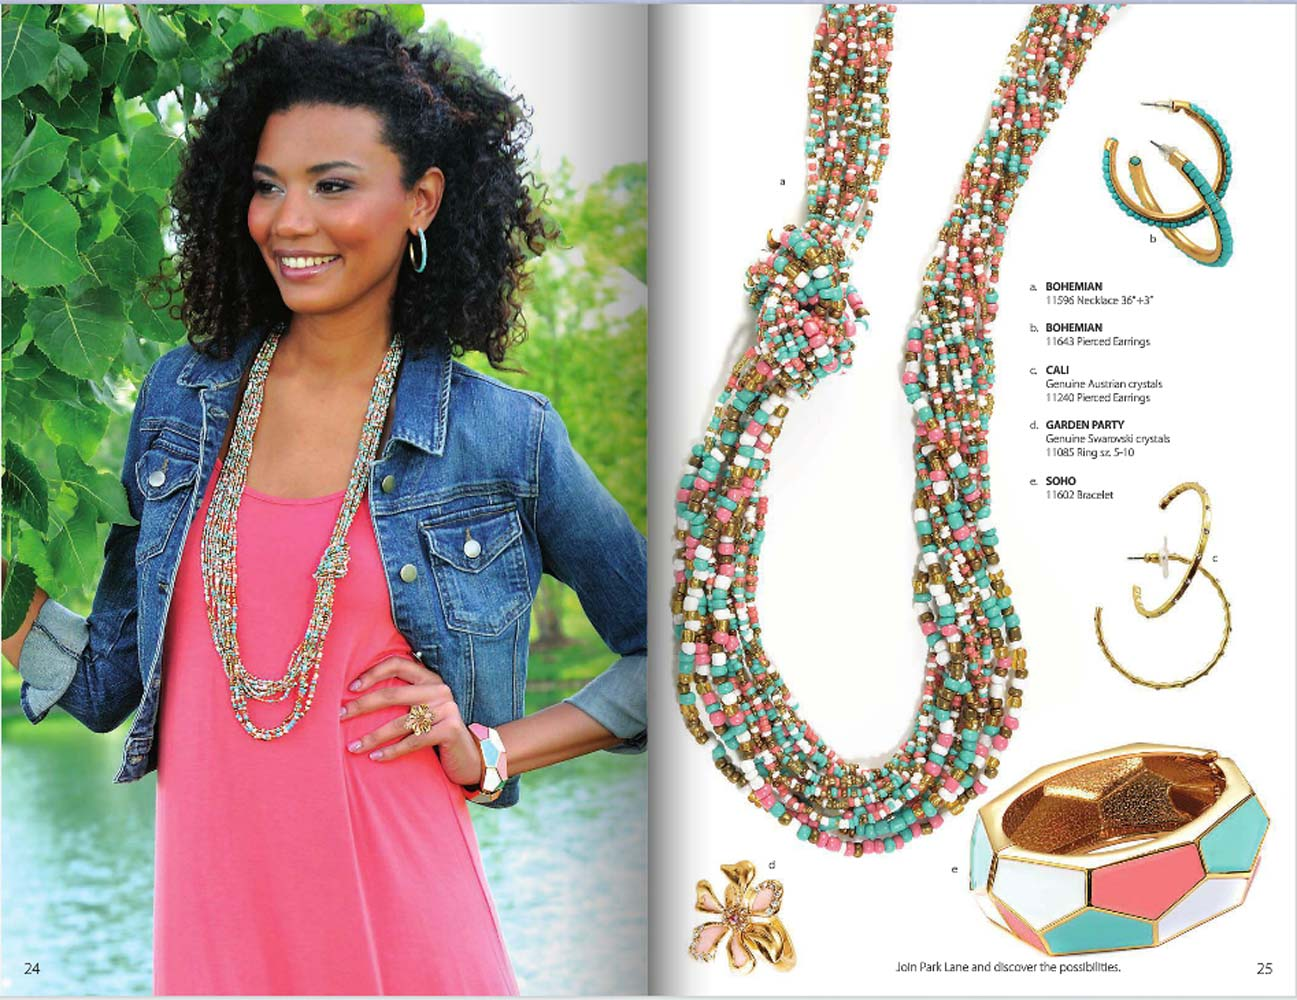 Catalog pages of Park Lane jewelry catalog showing black woman on left wearing jeans jacket and long beaded necklace and product shots of jewelry on right with prices Jewelry Photography